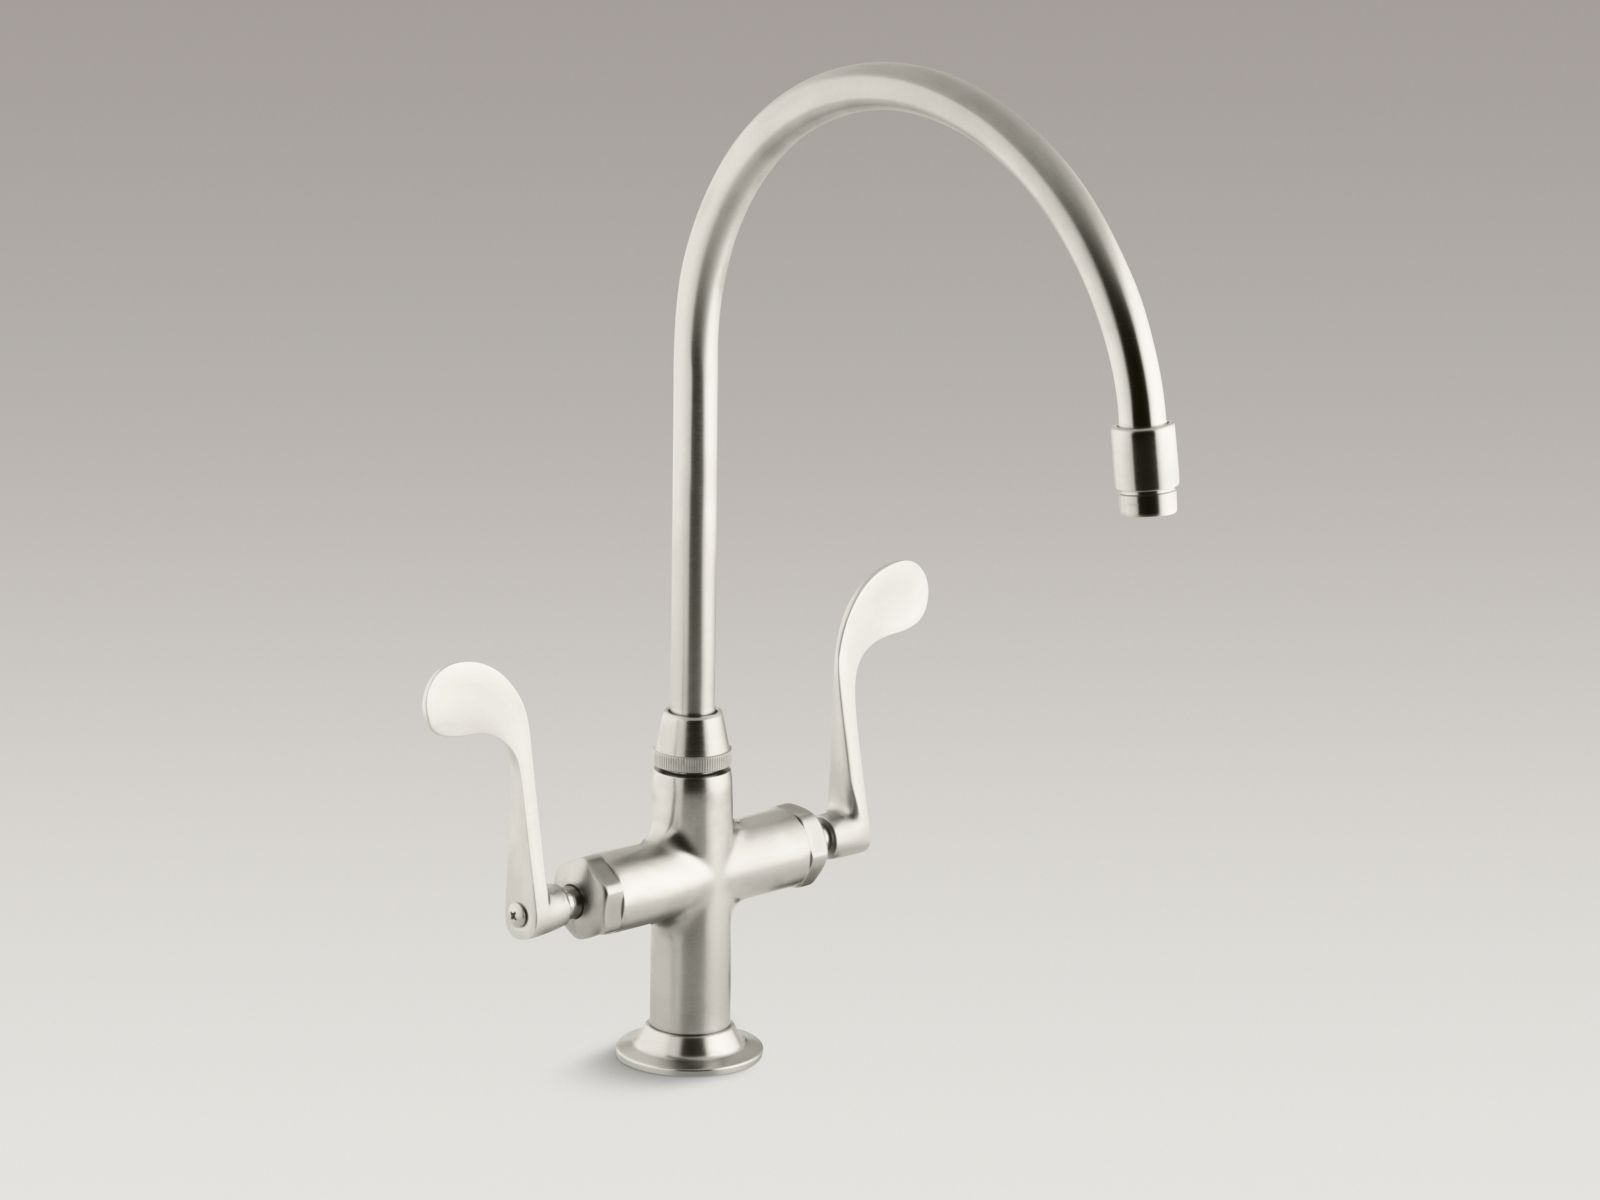 "Kohler K-8762-BN Essex Single-hole Two-handle Bar Faucet with 9"" Gooseneck Spout and Wristblade Handles Brushed Nickel"